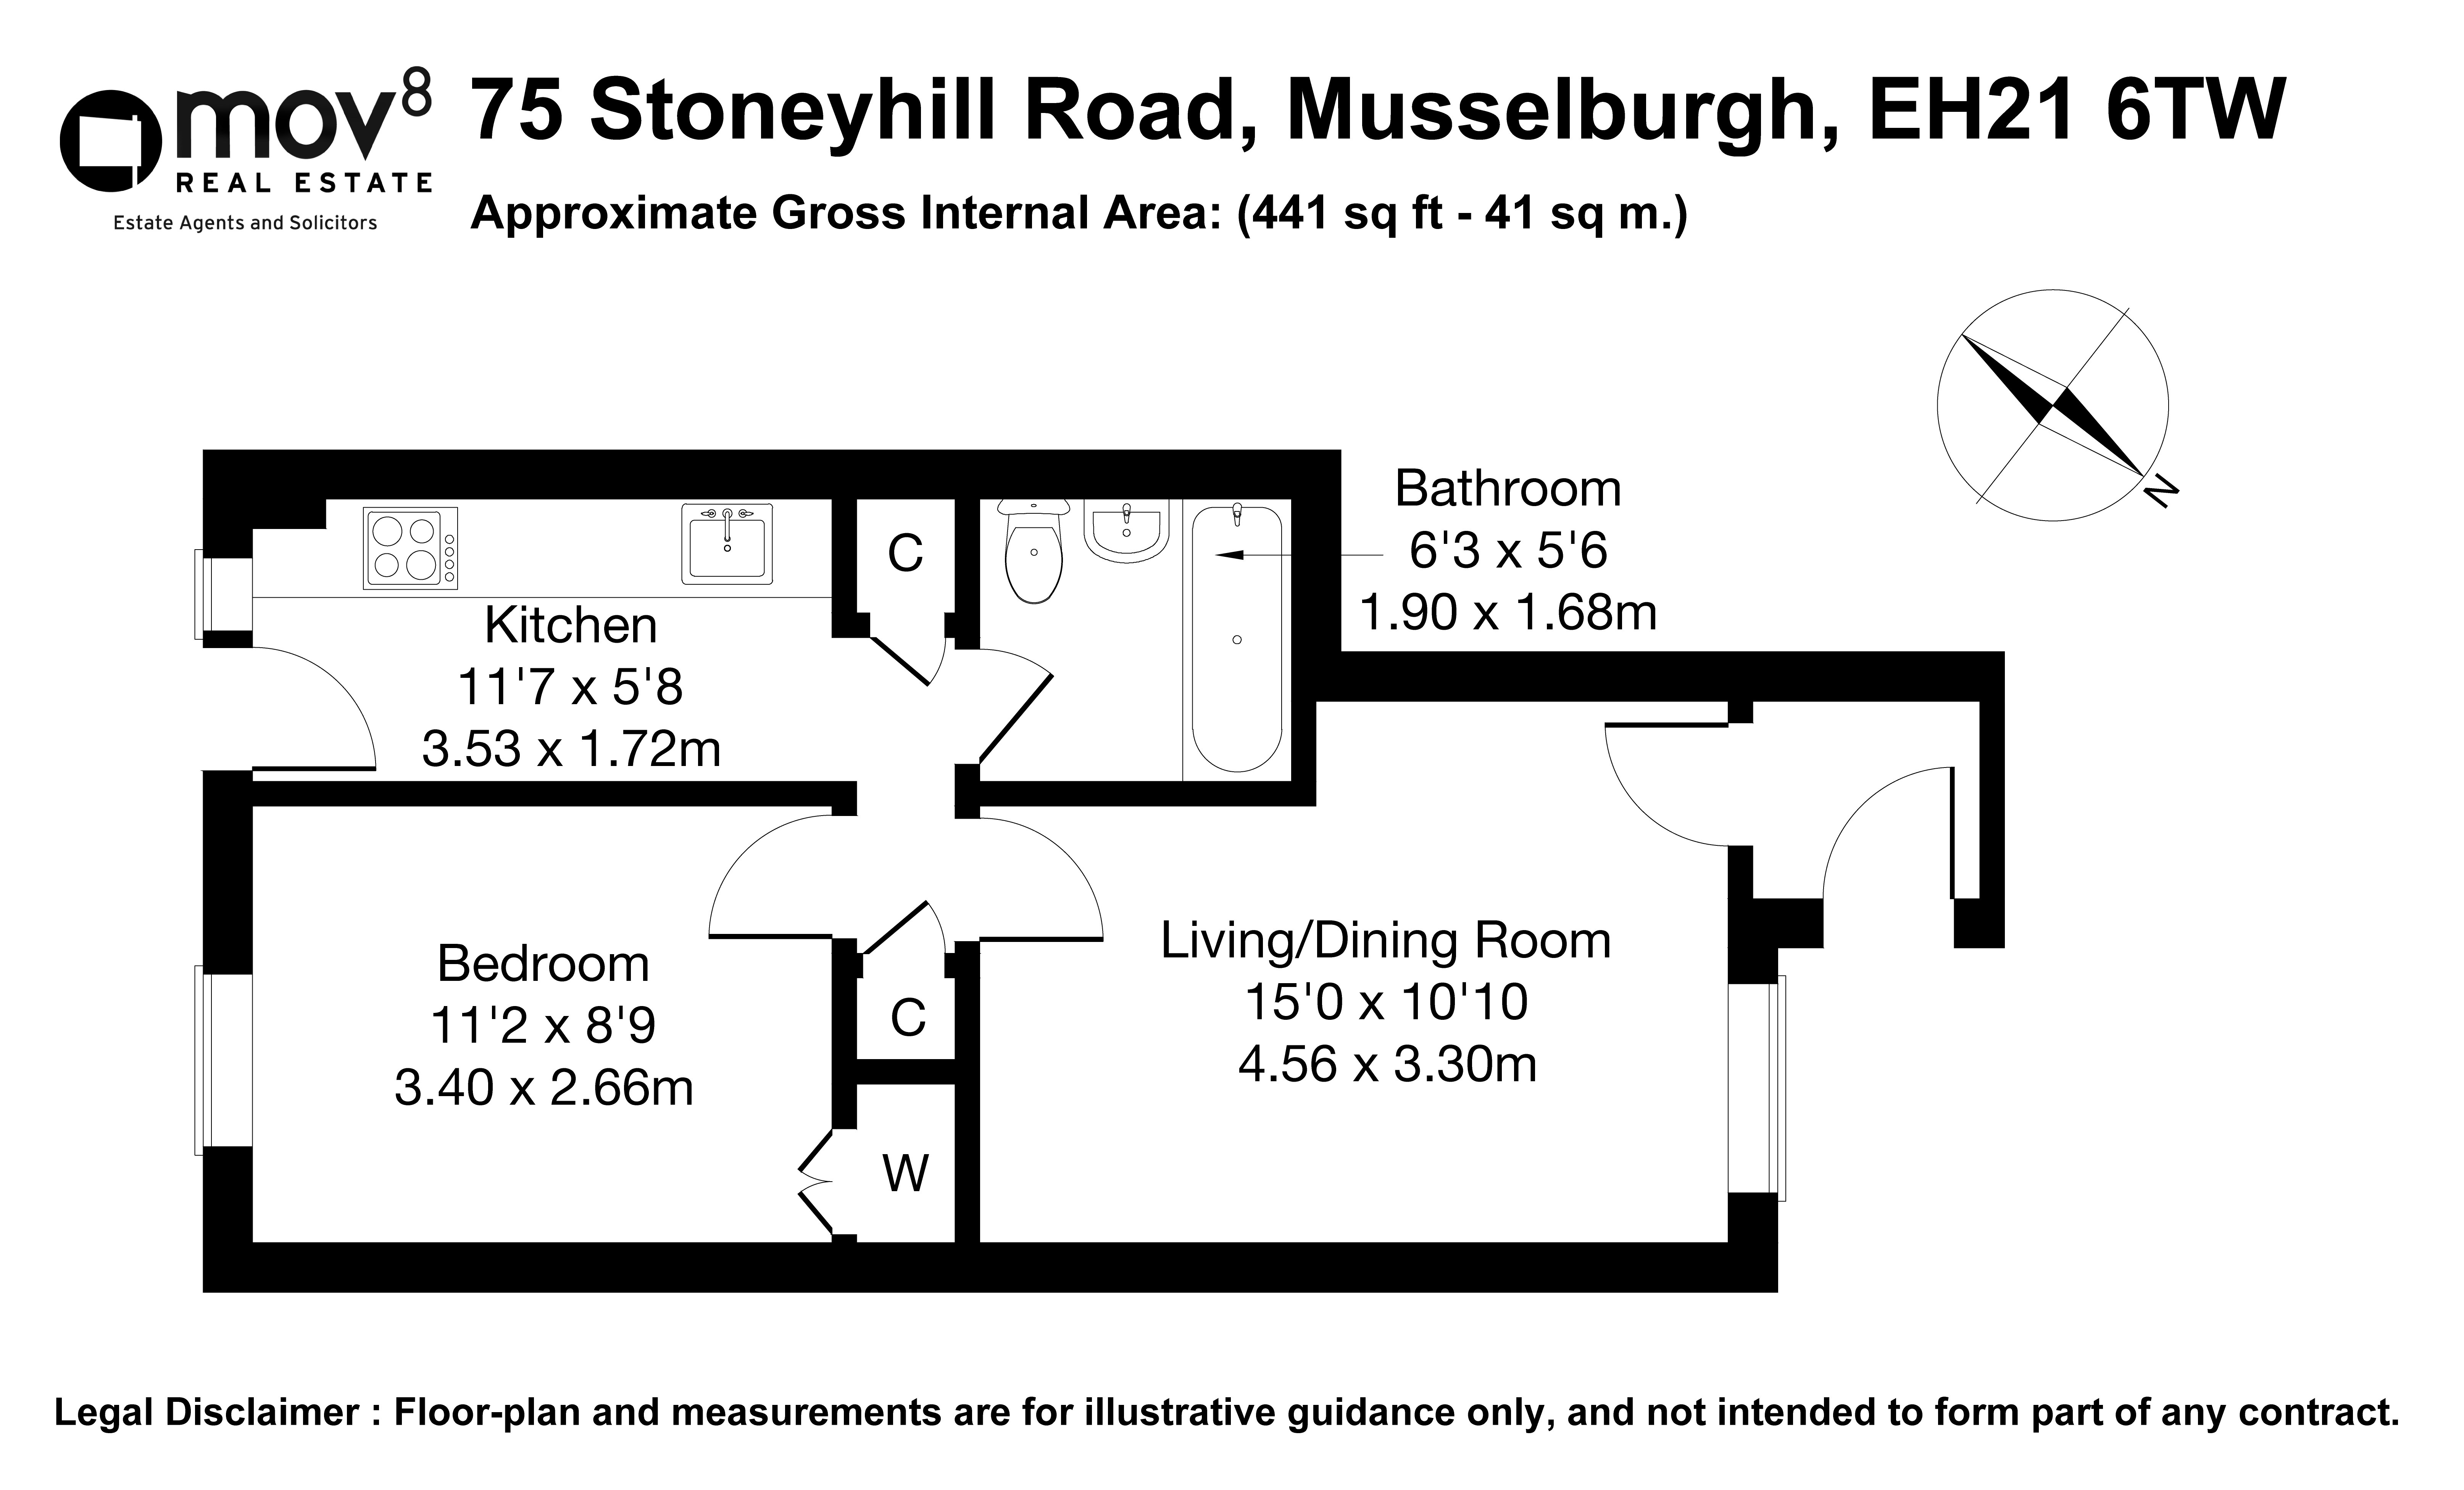 Floorplan 1 of 75 Stoneyhill Road, Musselburgh, East Lothian, EH21 6TW